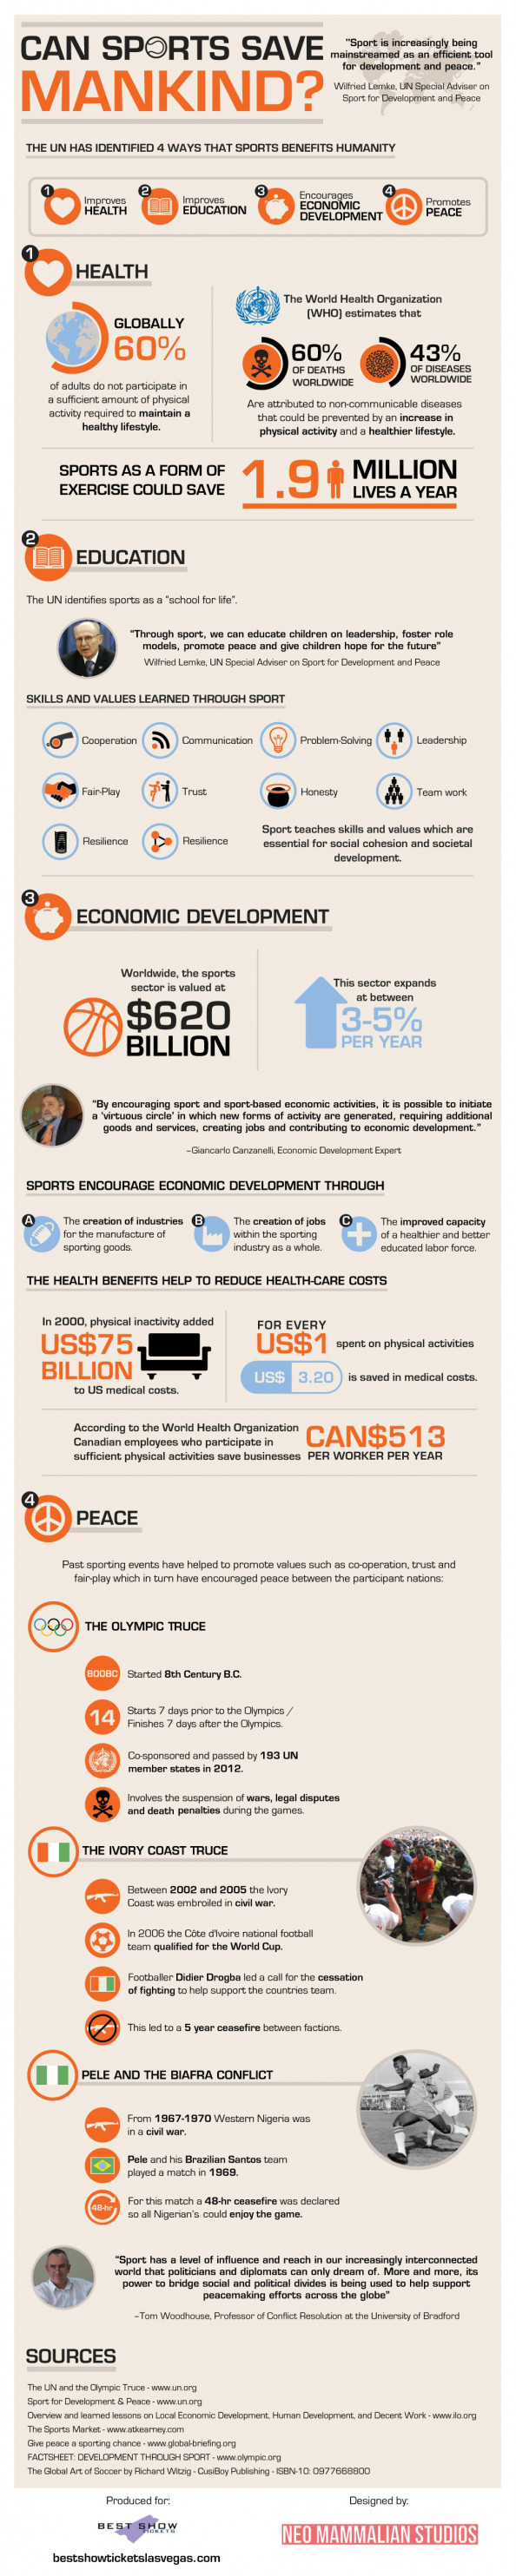 Can Sports Save Mankind? Infographic